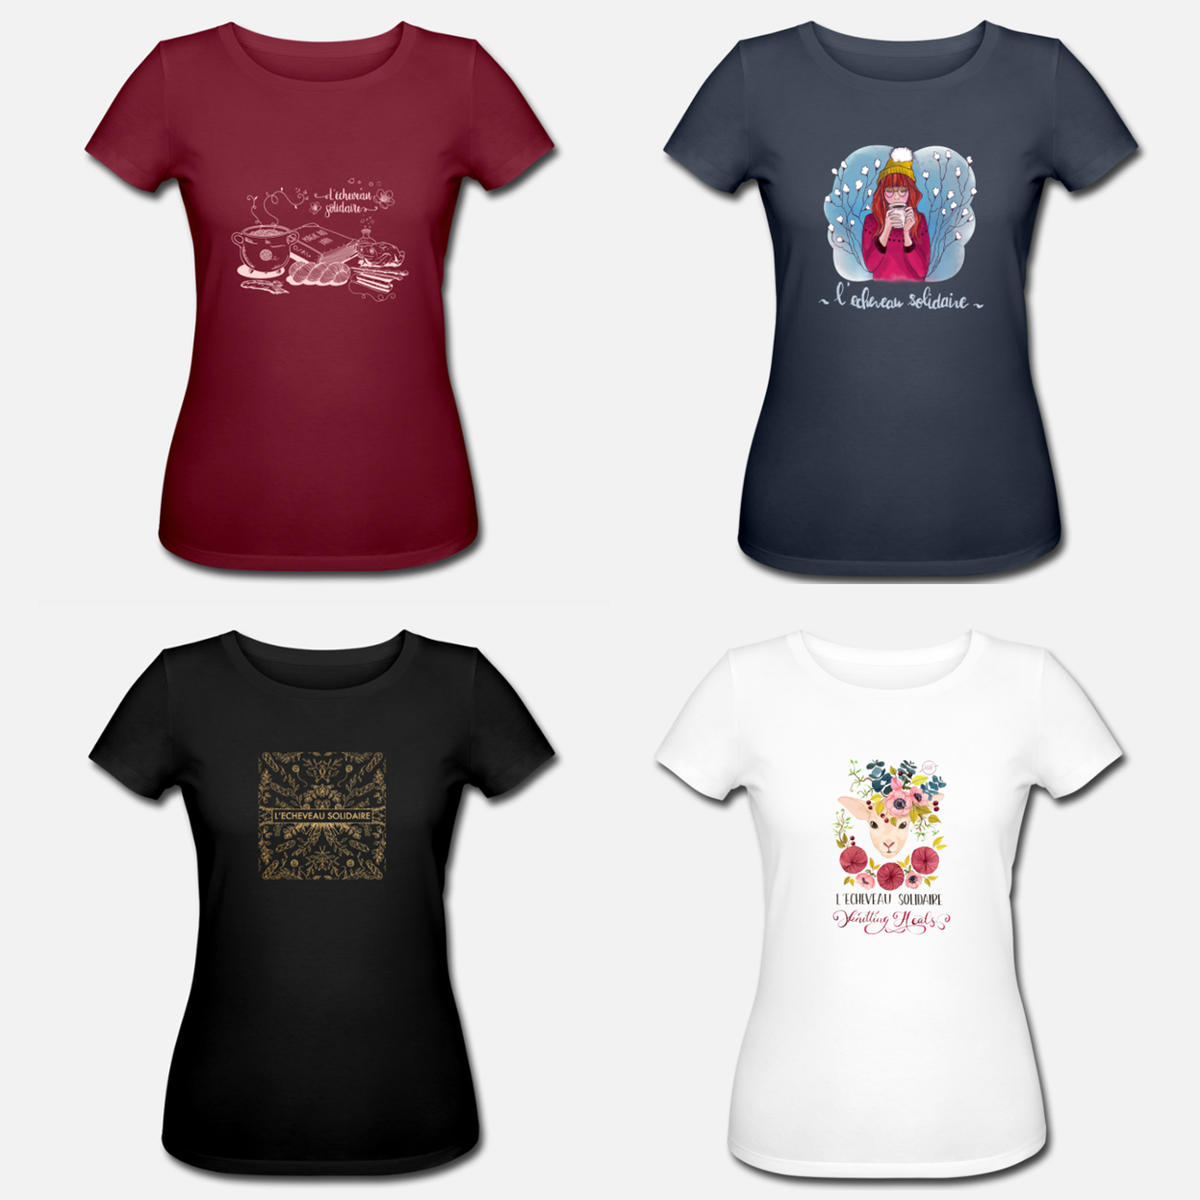 Image of Tee shirts